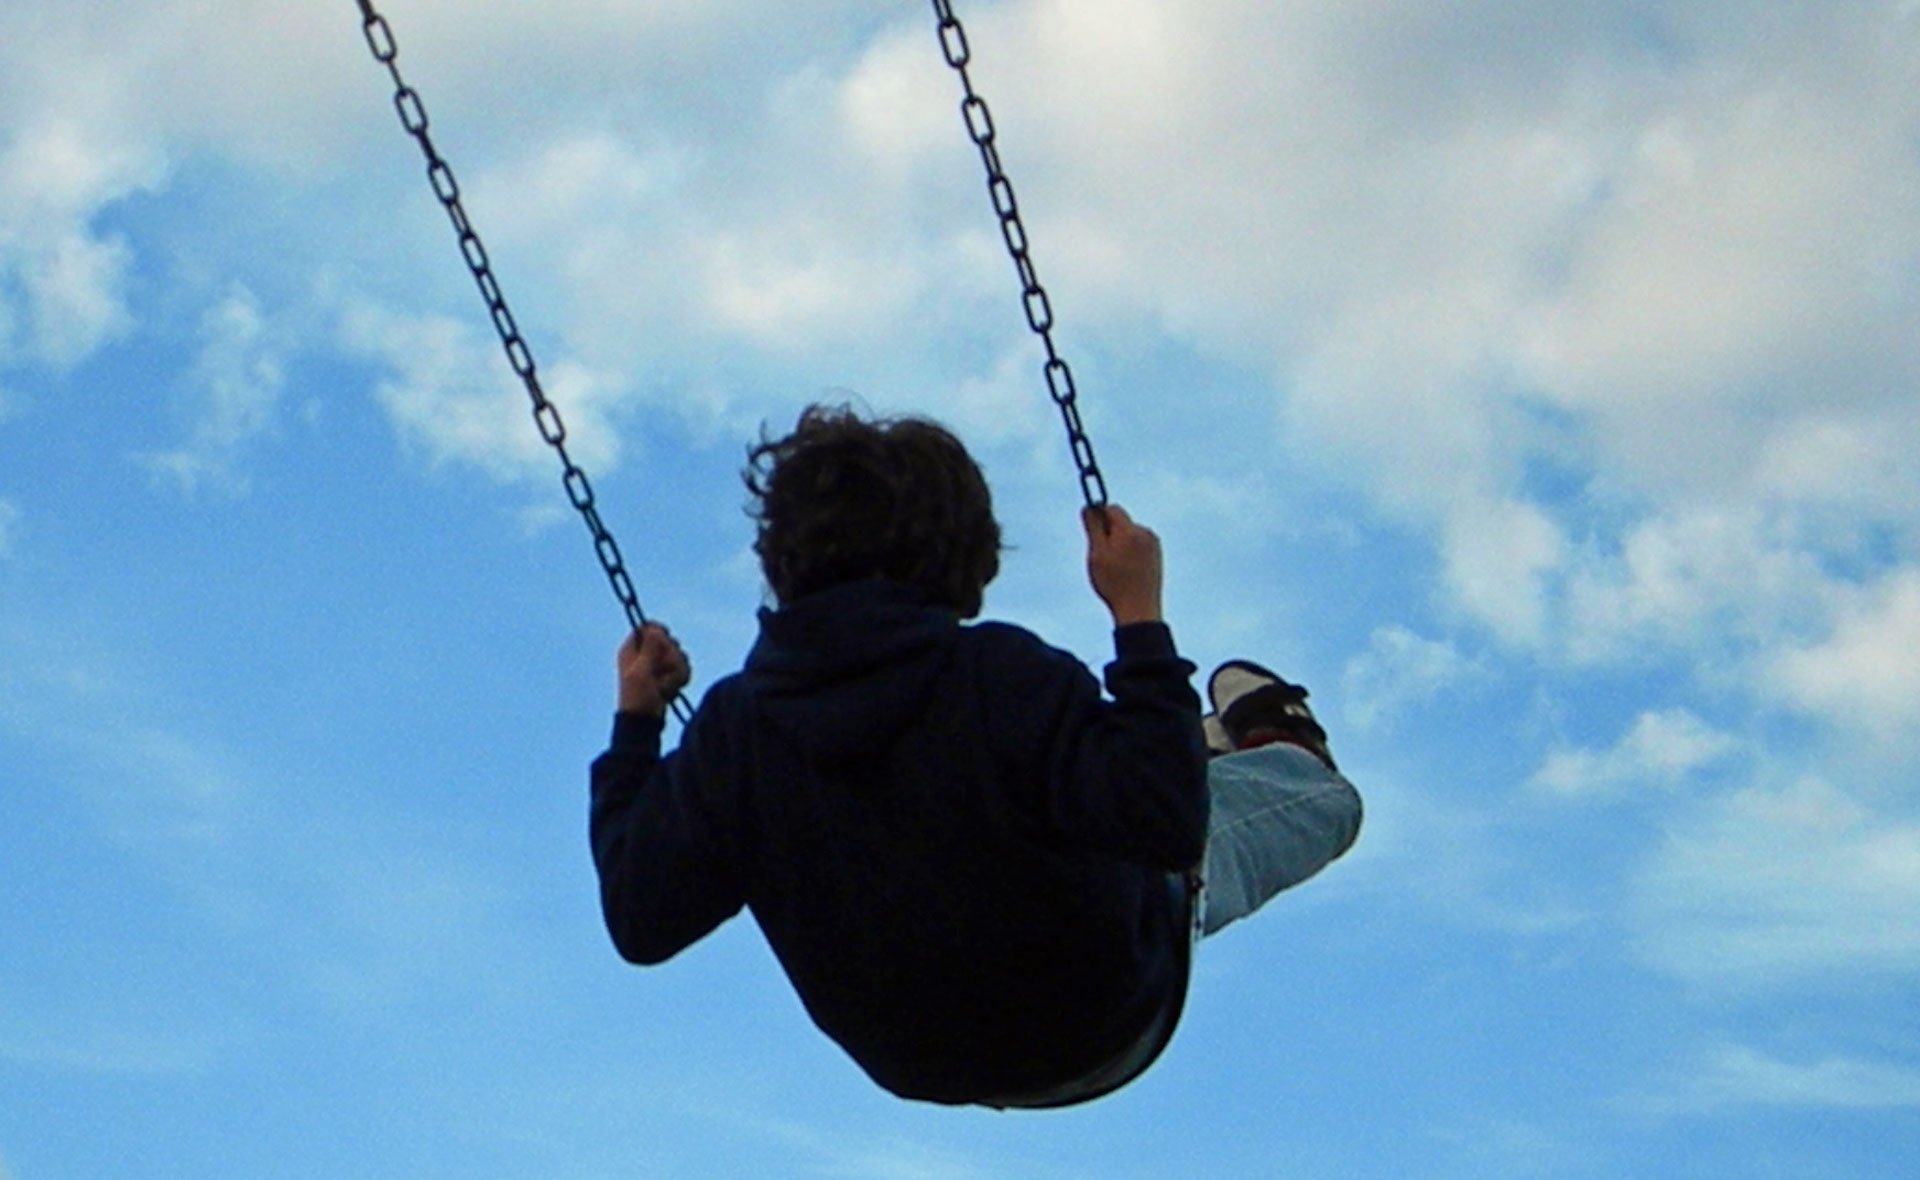 If We Know Play-Based Learning Works, Why Don't We Do It?